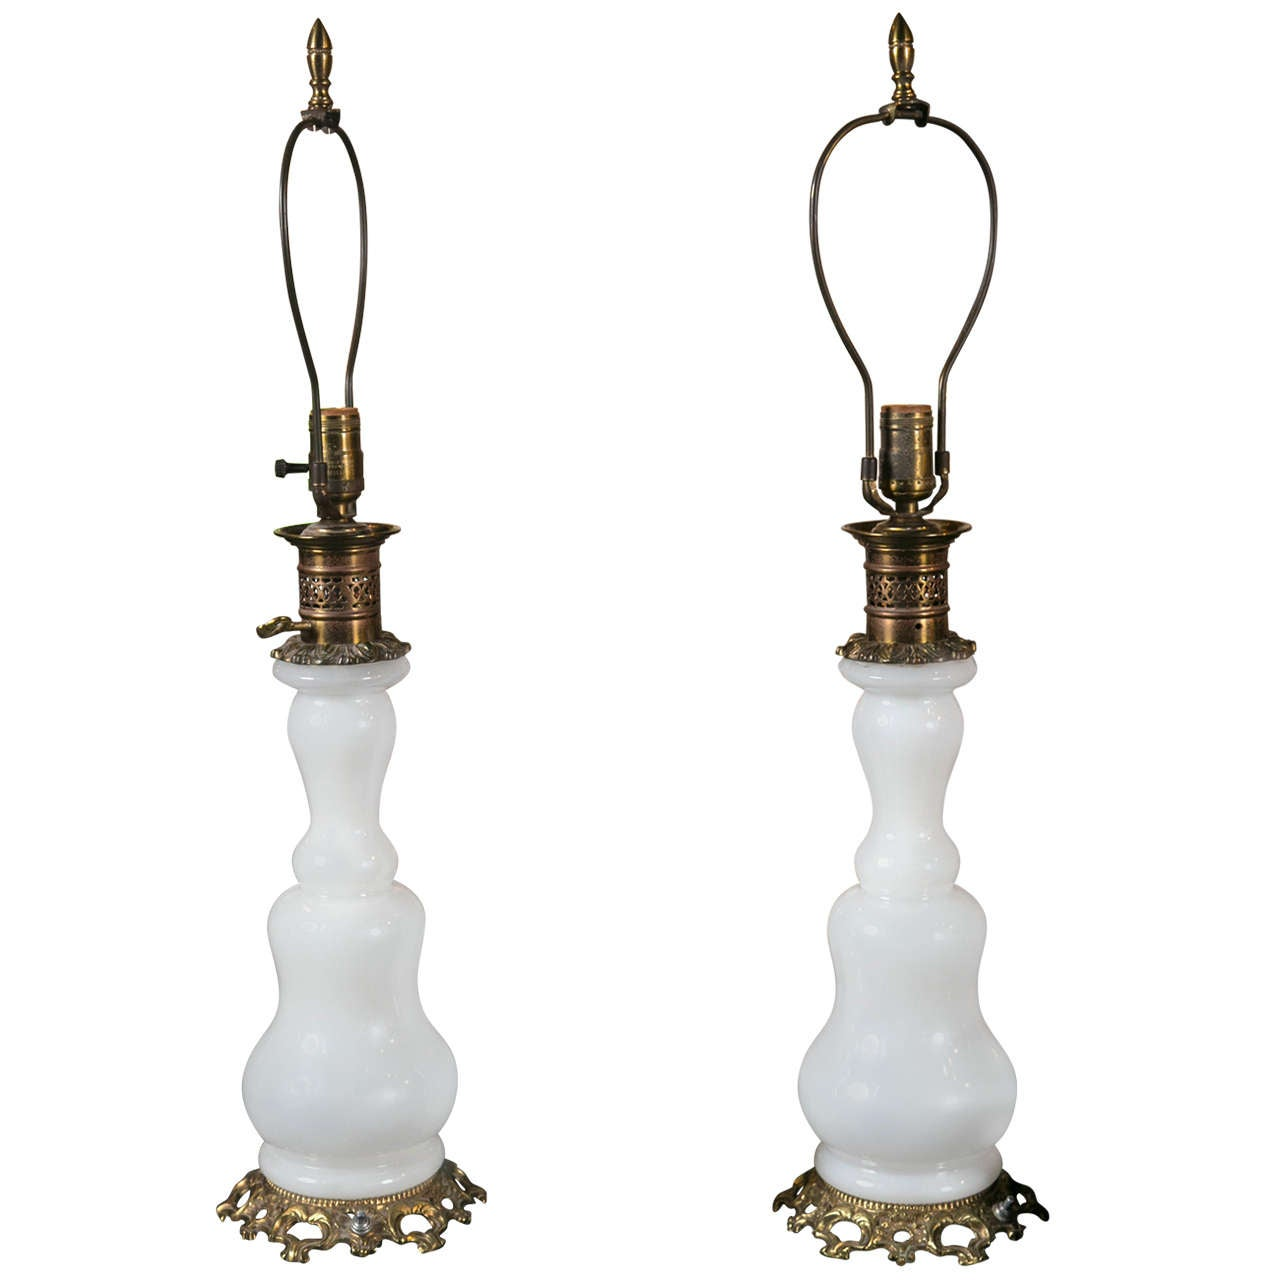 Pair of French Opaline Table Lamps